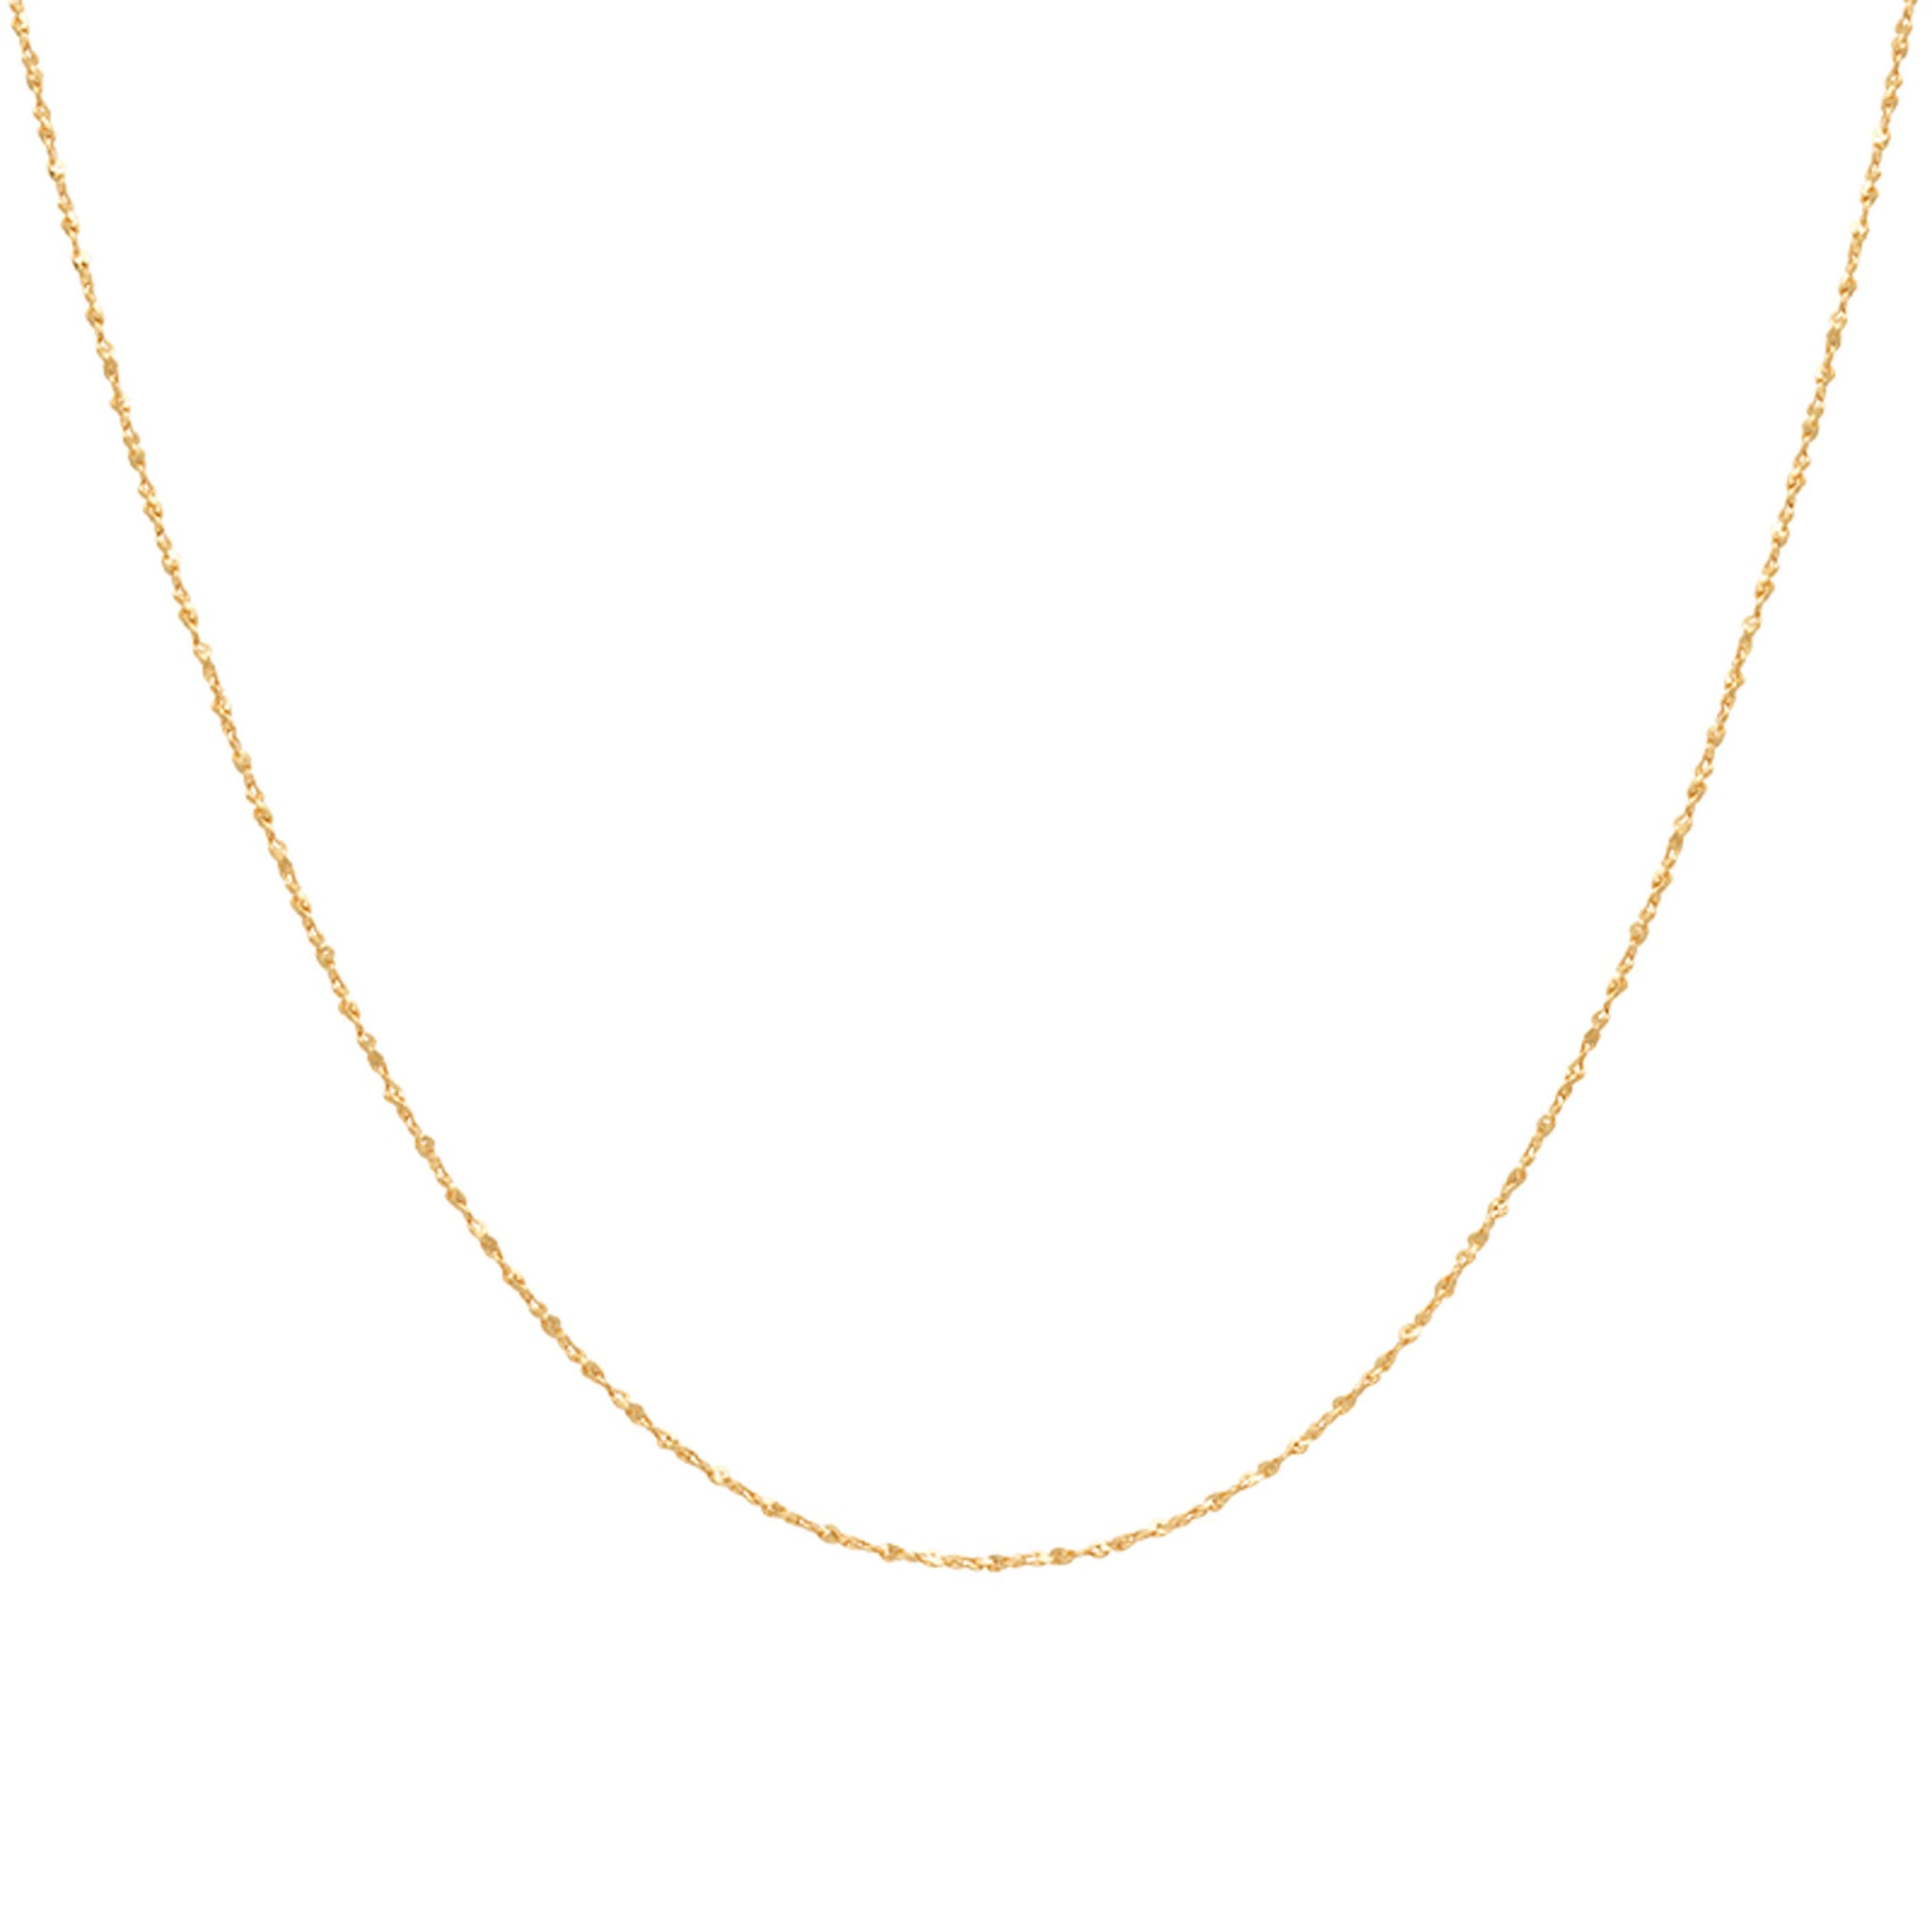 Fine Twist Chain 40cm in Gold